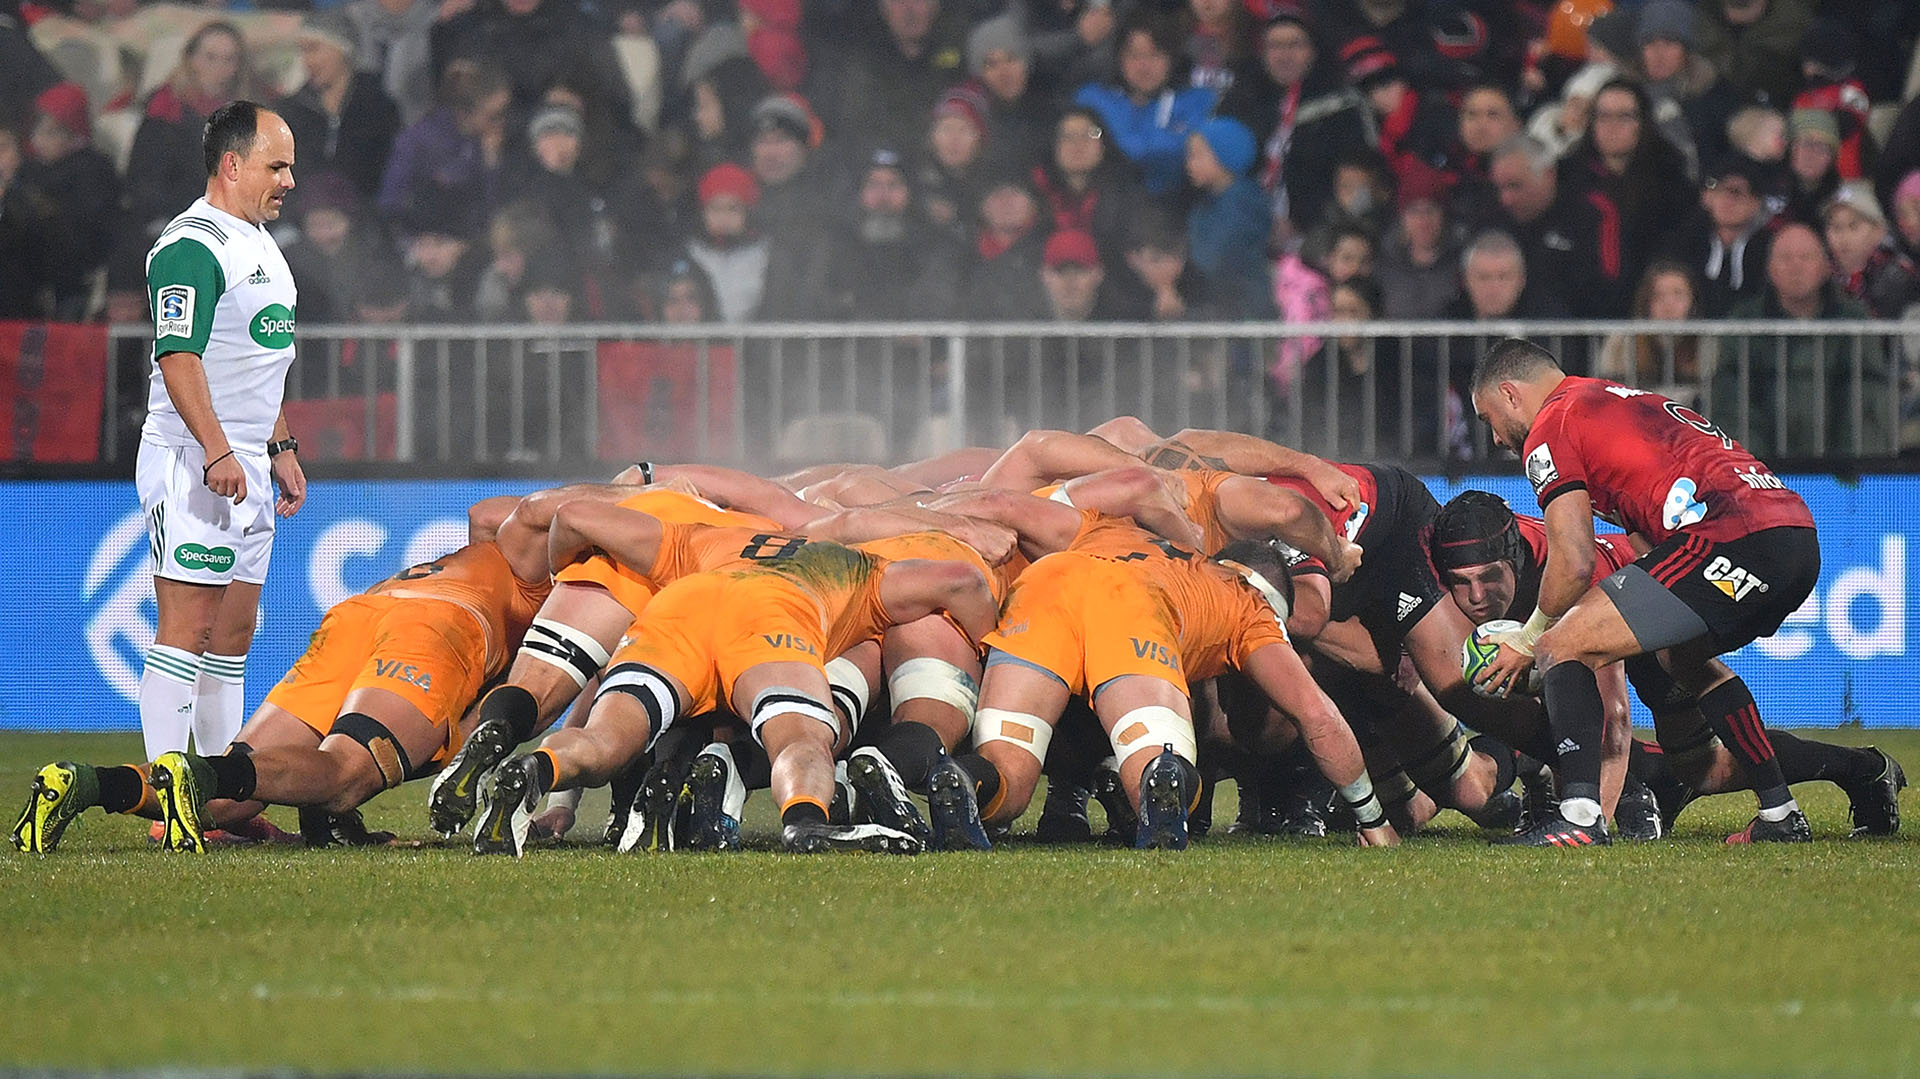 Bryn Hall toma la pelota durante un scrum del primer tiempo. (Photo by Marty MELVILLE / AFP)